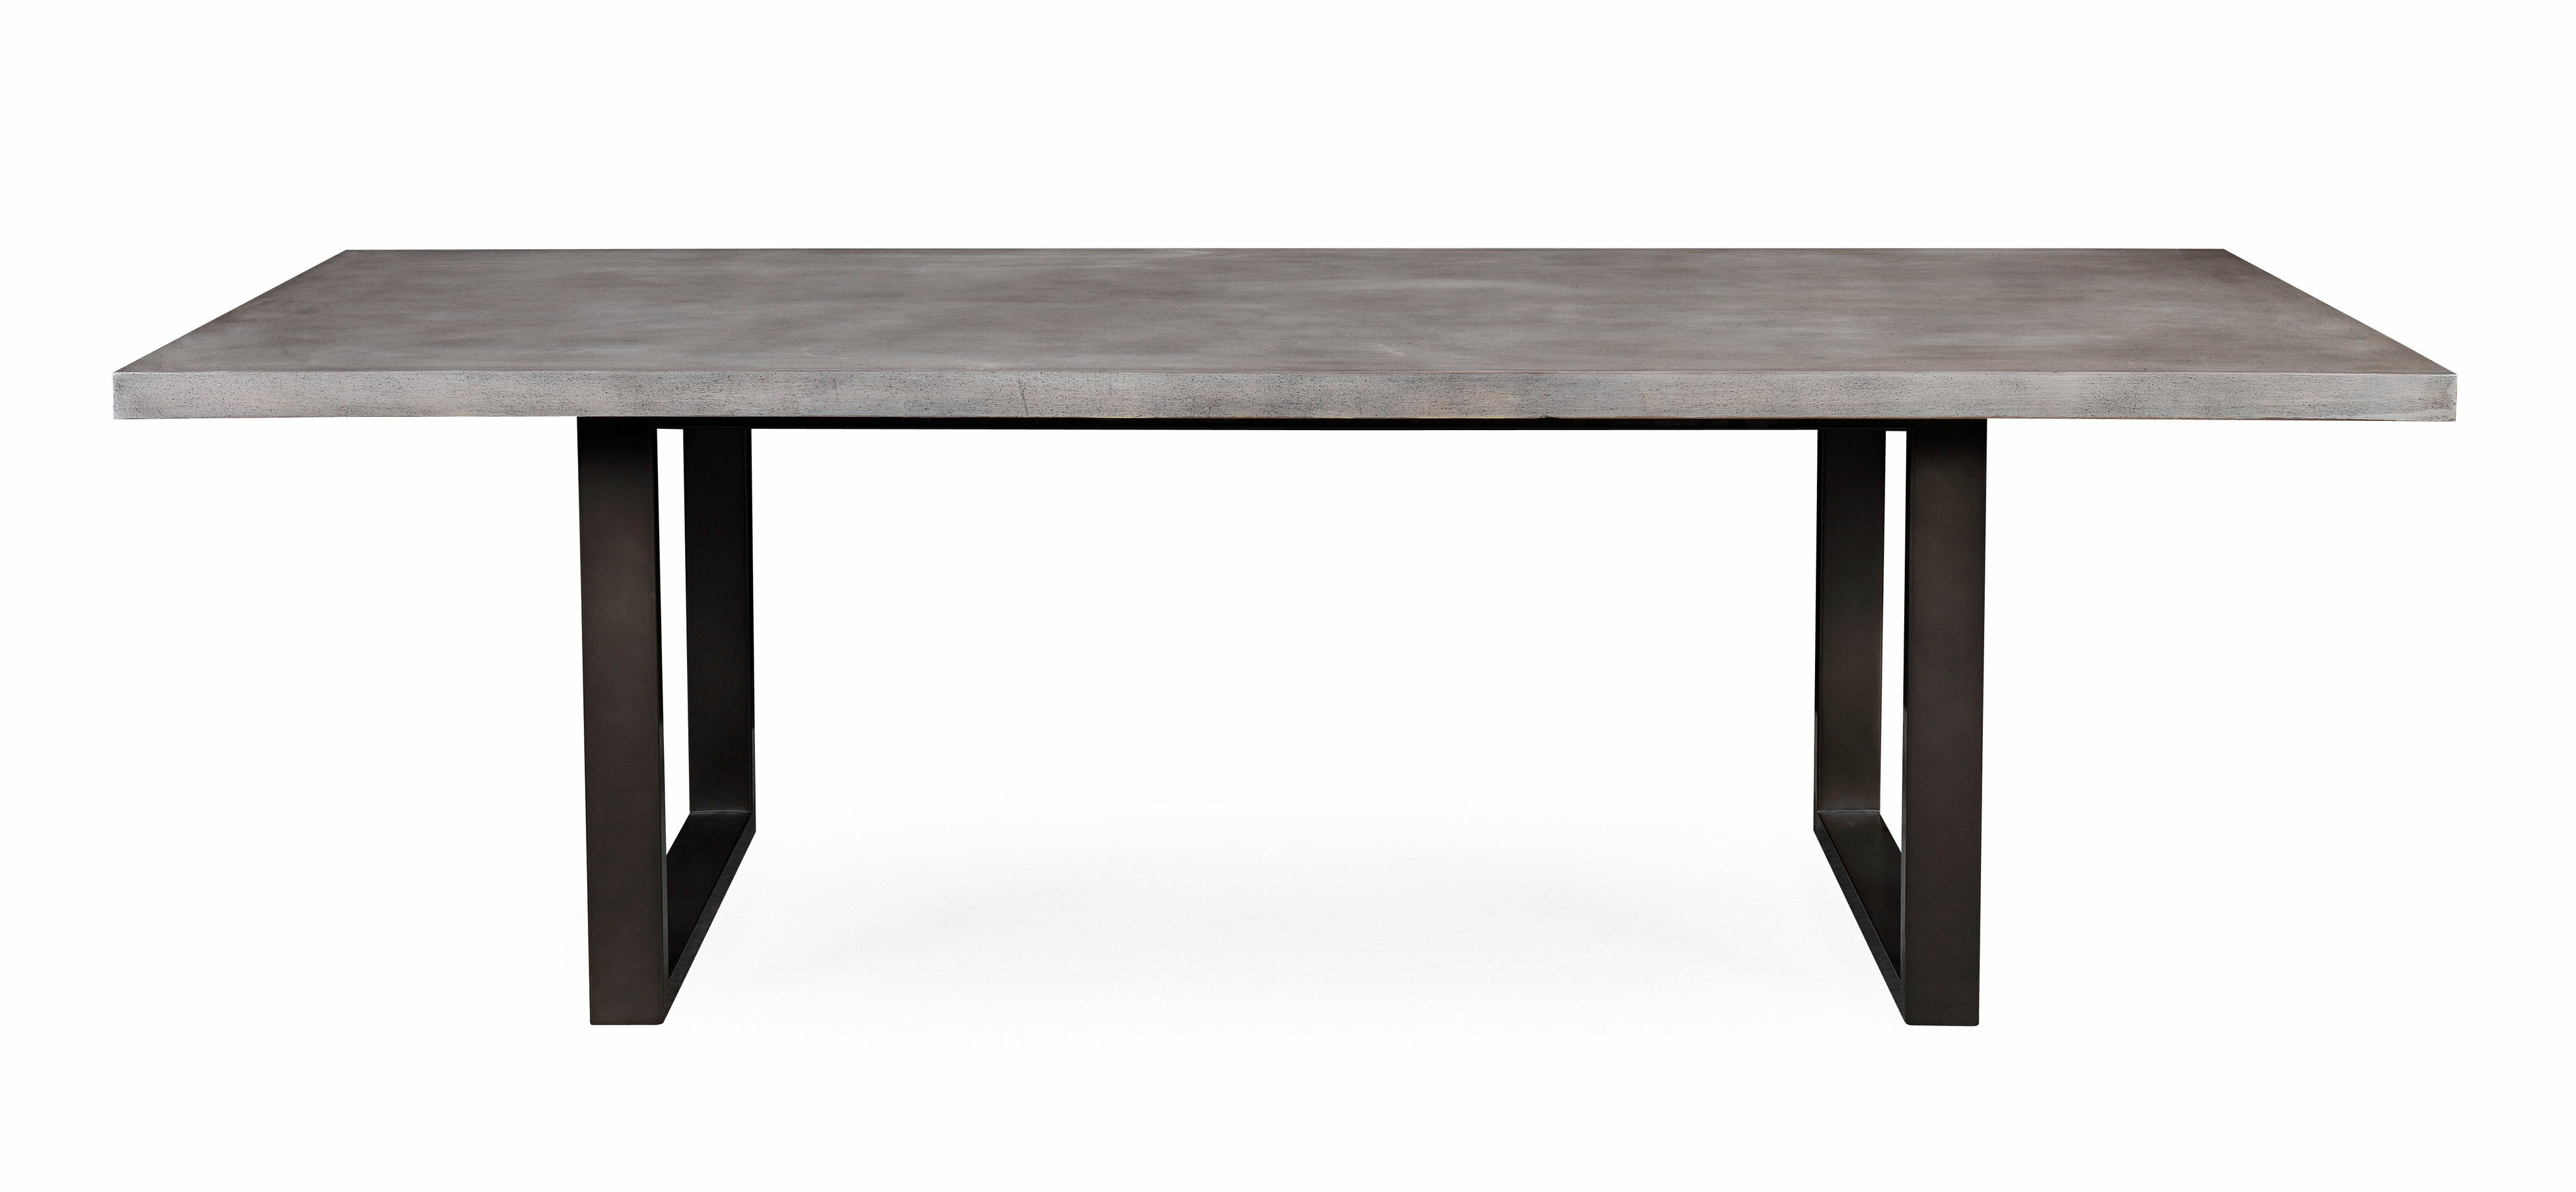 Carnarvon Concrete Dining Table